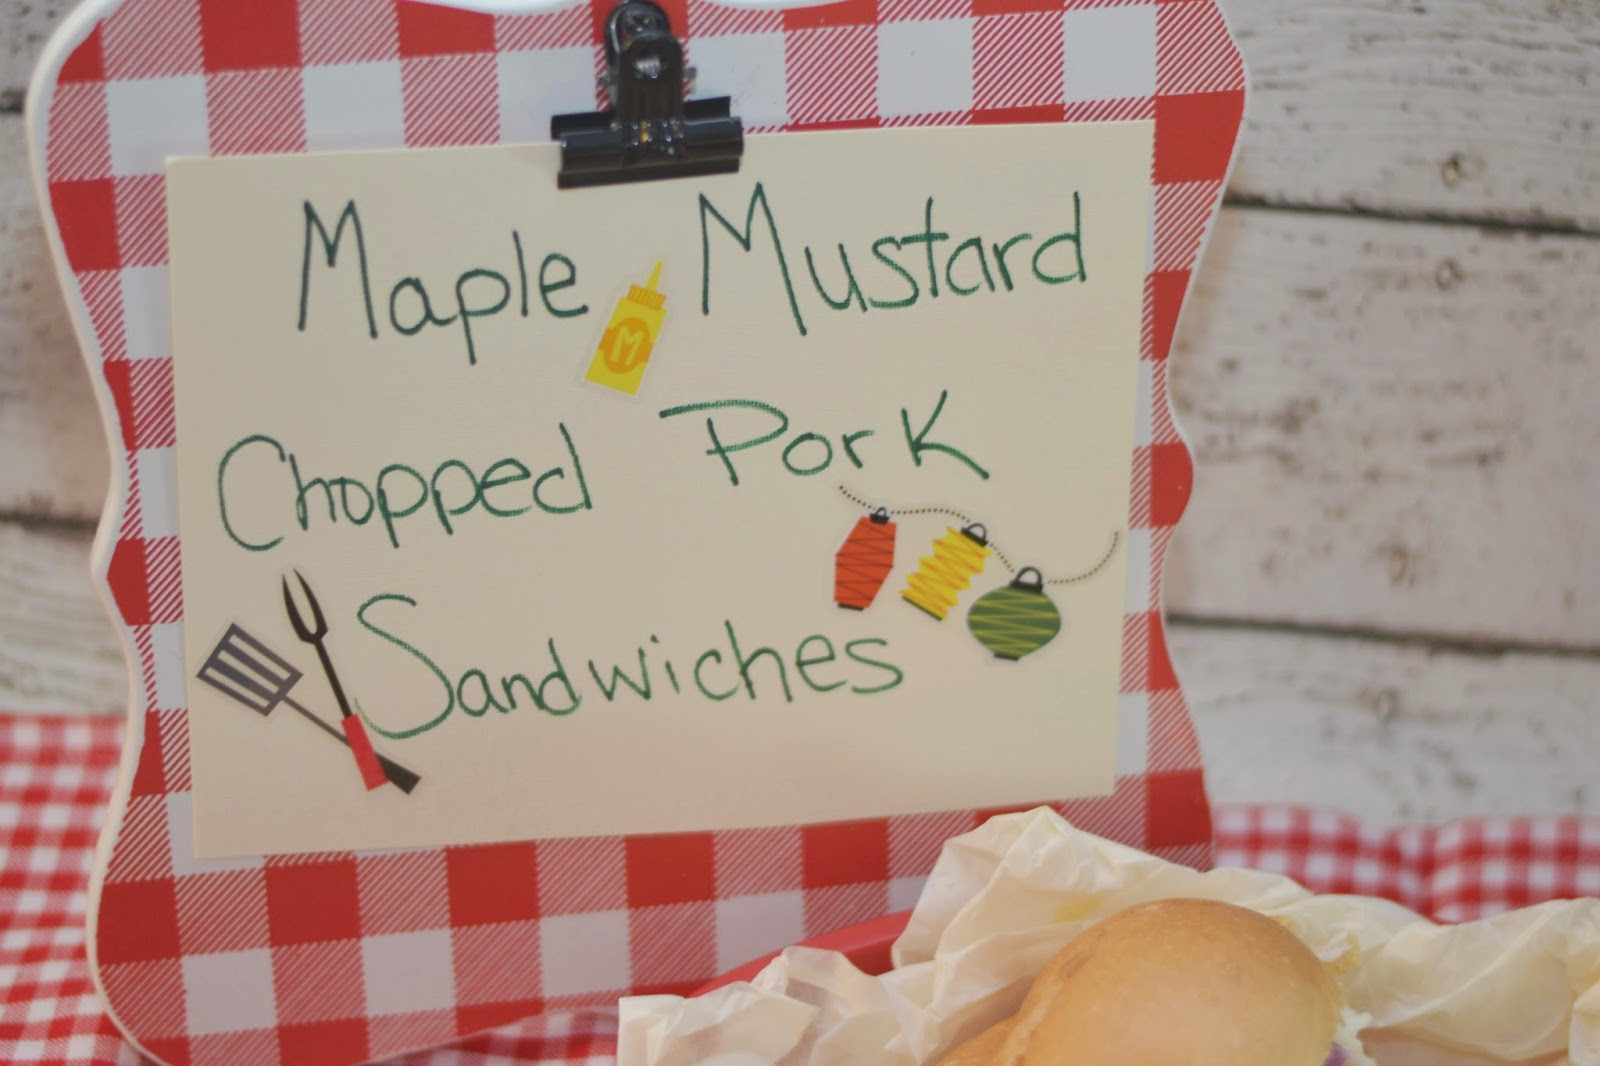 New Heinz® Yellow Mustard, Maple Mustard Chopped Pork Sandwich #Recipe, Mustard in recipes, mustard for grilling, Heinz Mustard and Ketchup